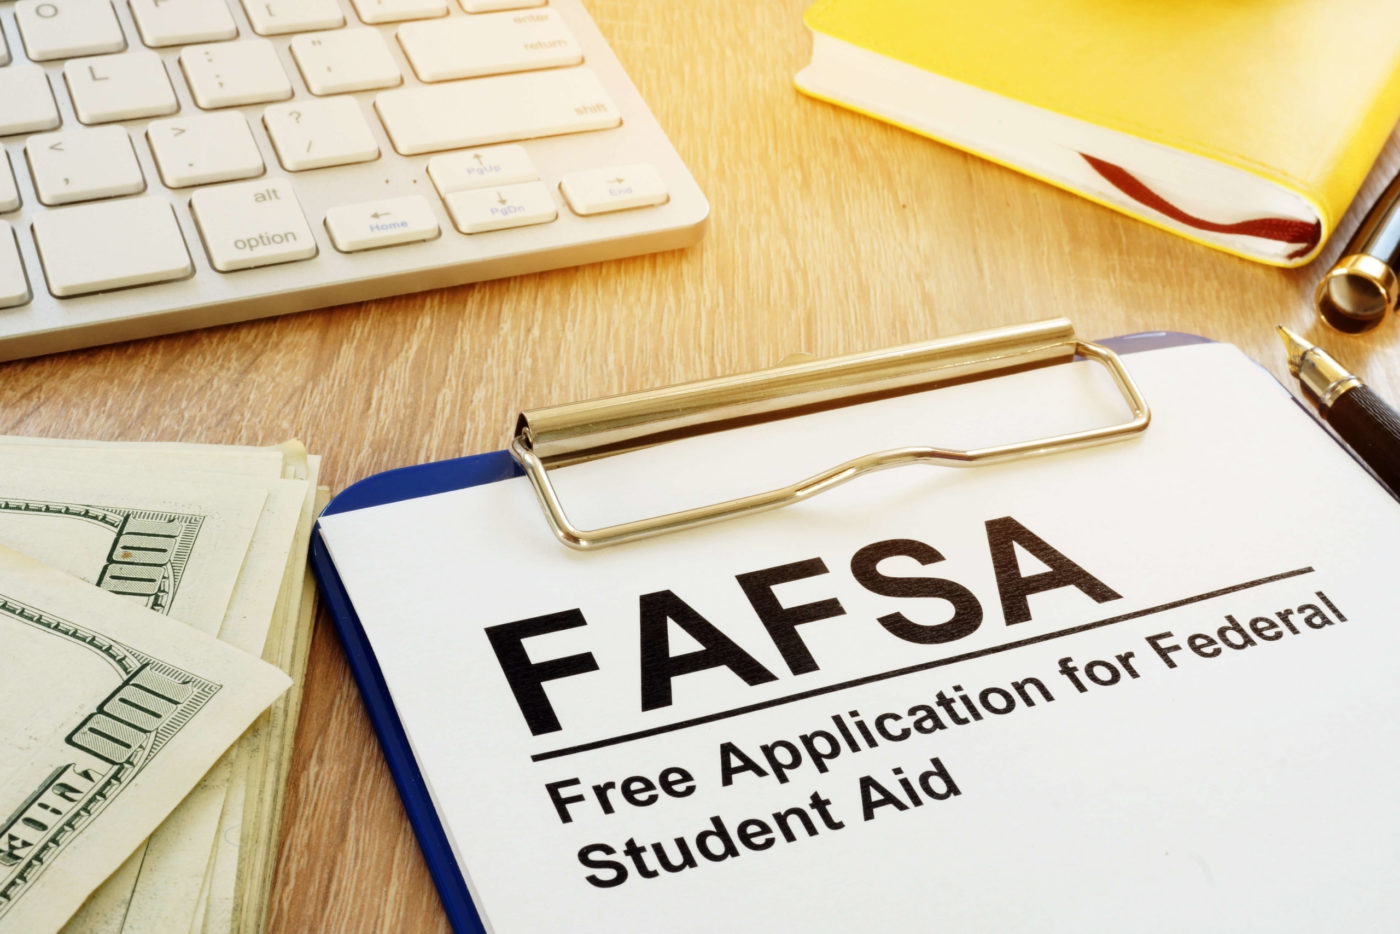 Free Application for Federal Student Aid (FAFSA) on a clipboard